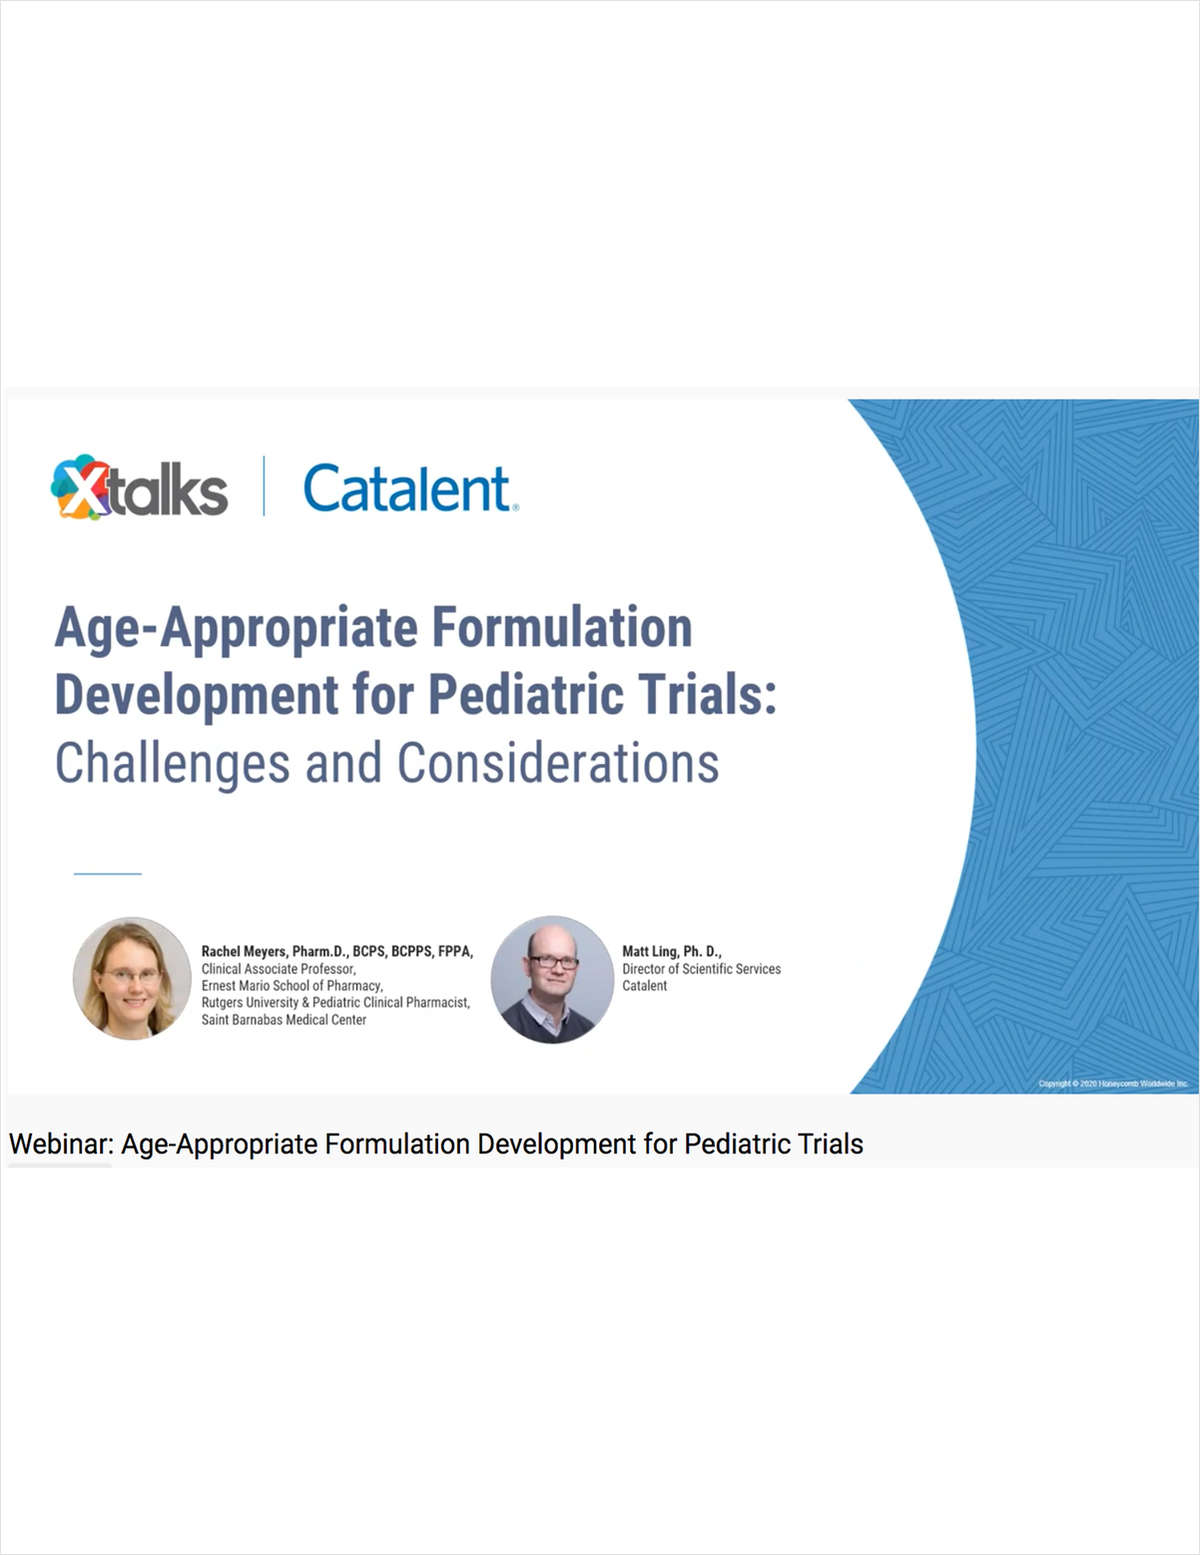 Age-Appropriate Formulation Development for Pediatric Trials-Challenges and Considerations